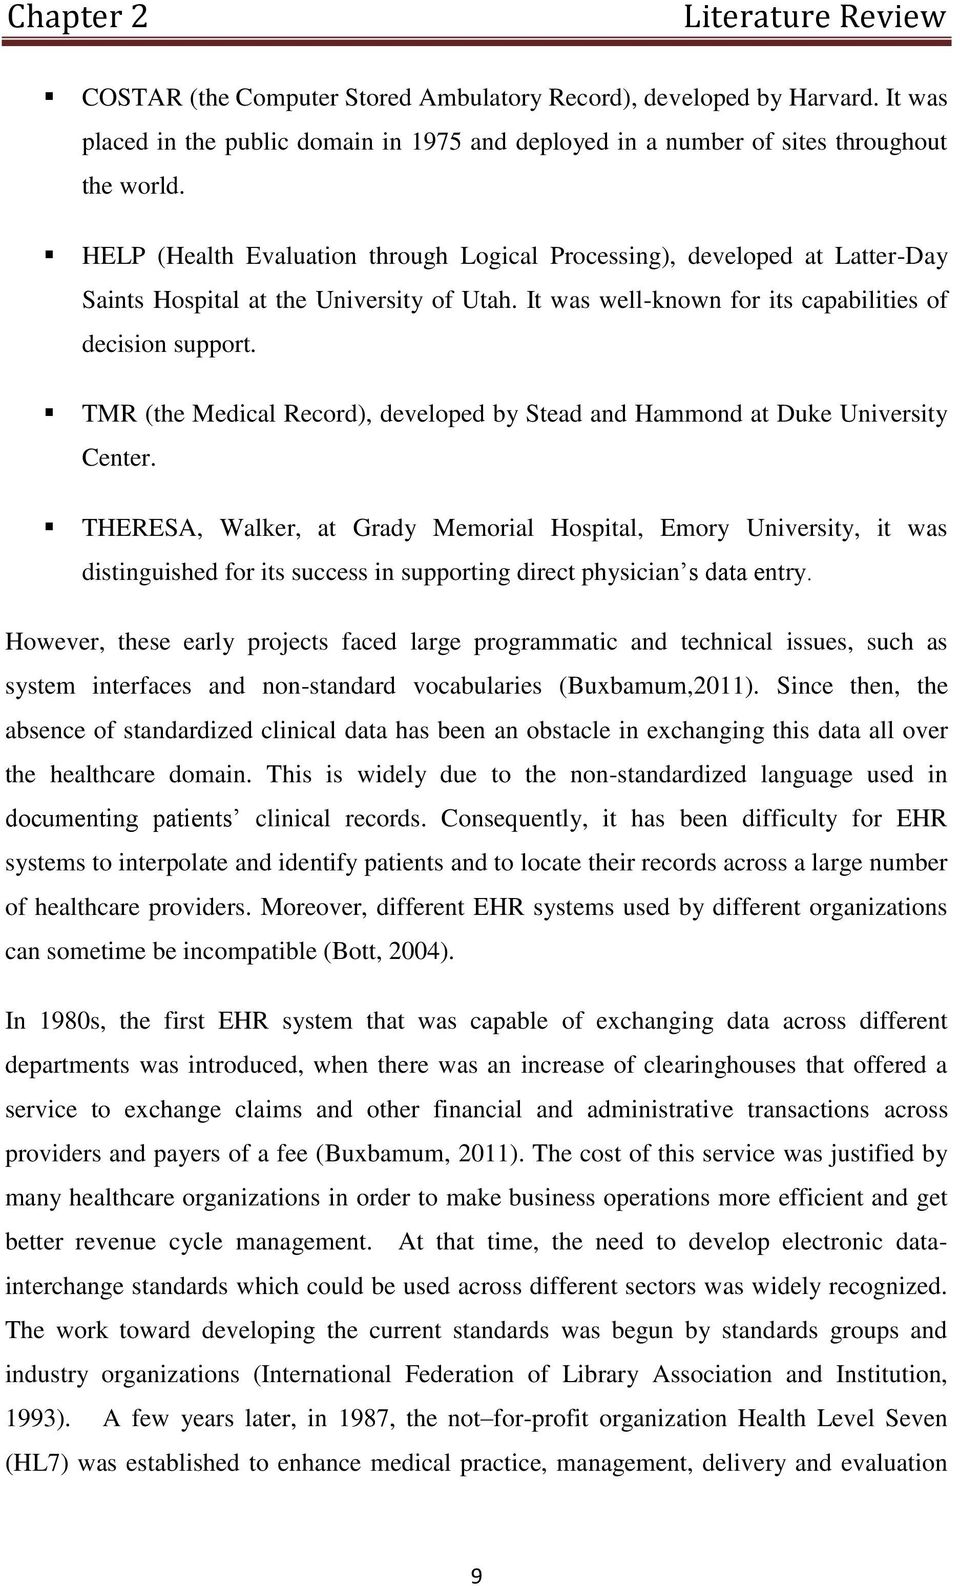 TMR (the Medical Record), developed by Stead and Hammond at Duke University Center.